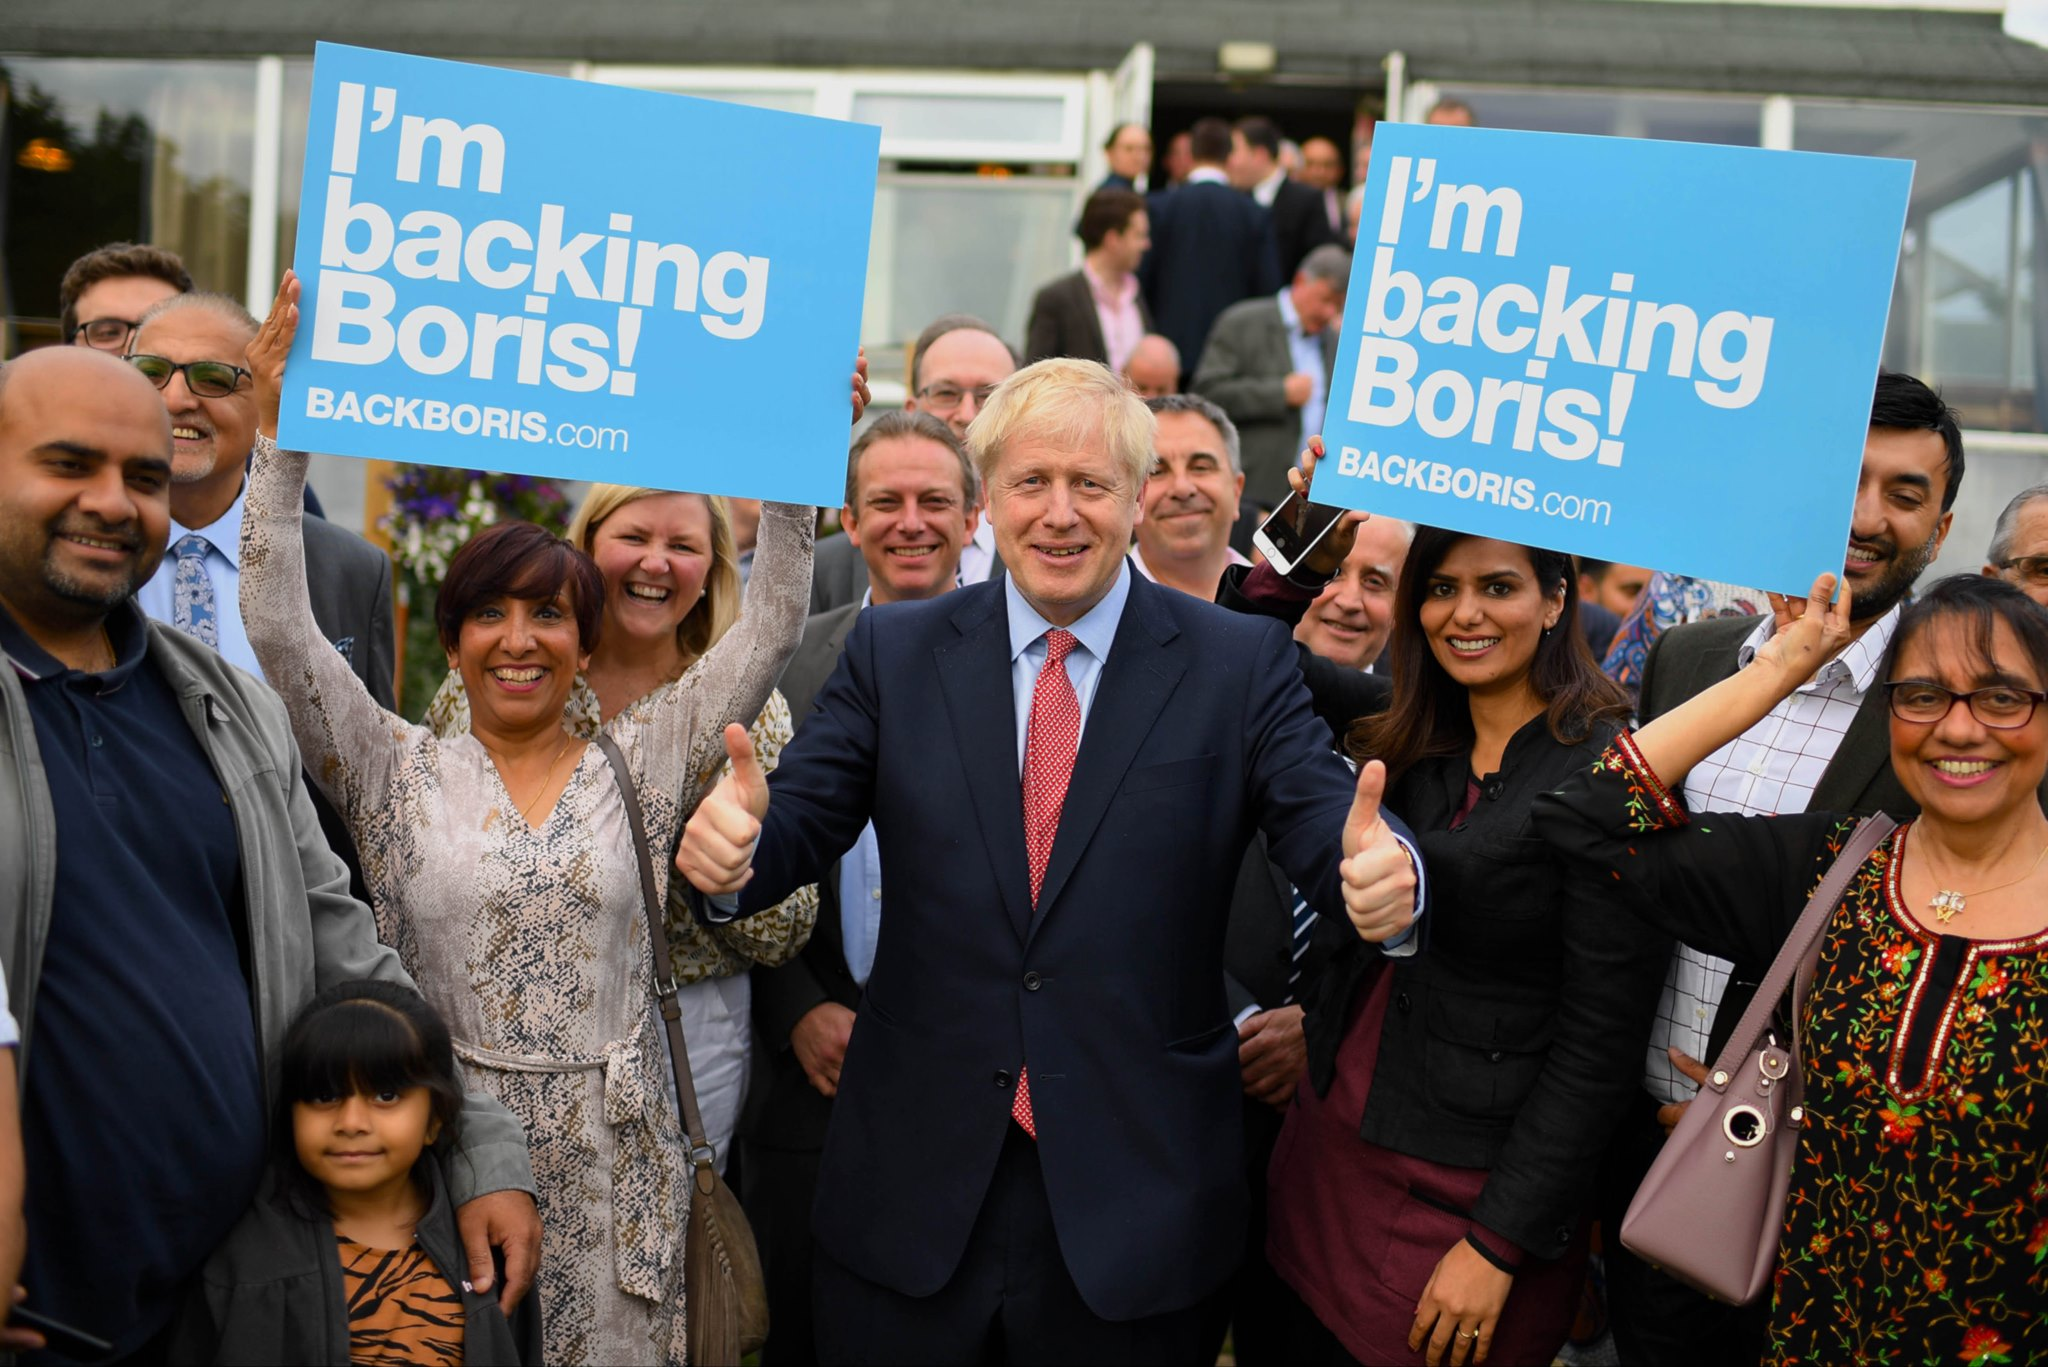 Boris Johnson Replaces Theresa May As Prime Minister Of The United Kingdom